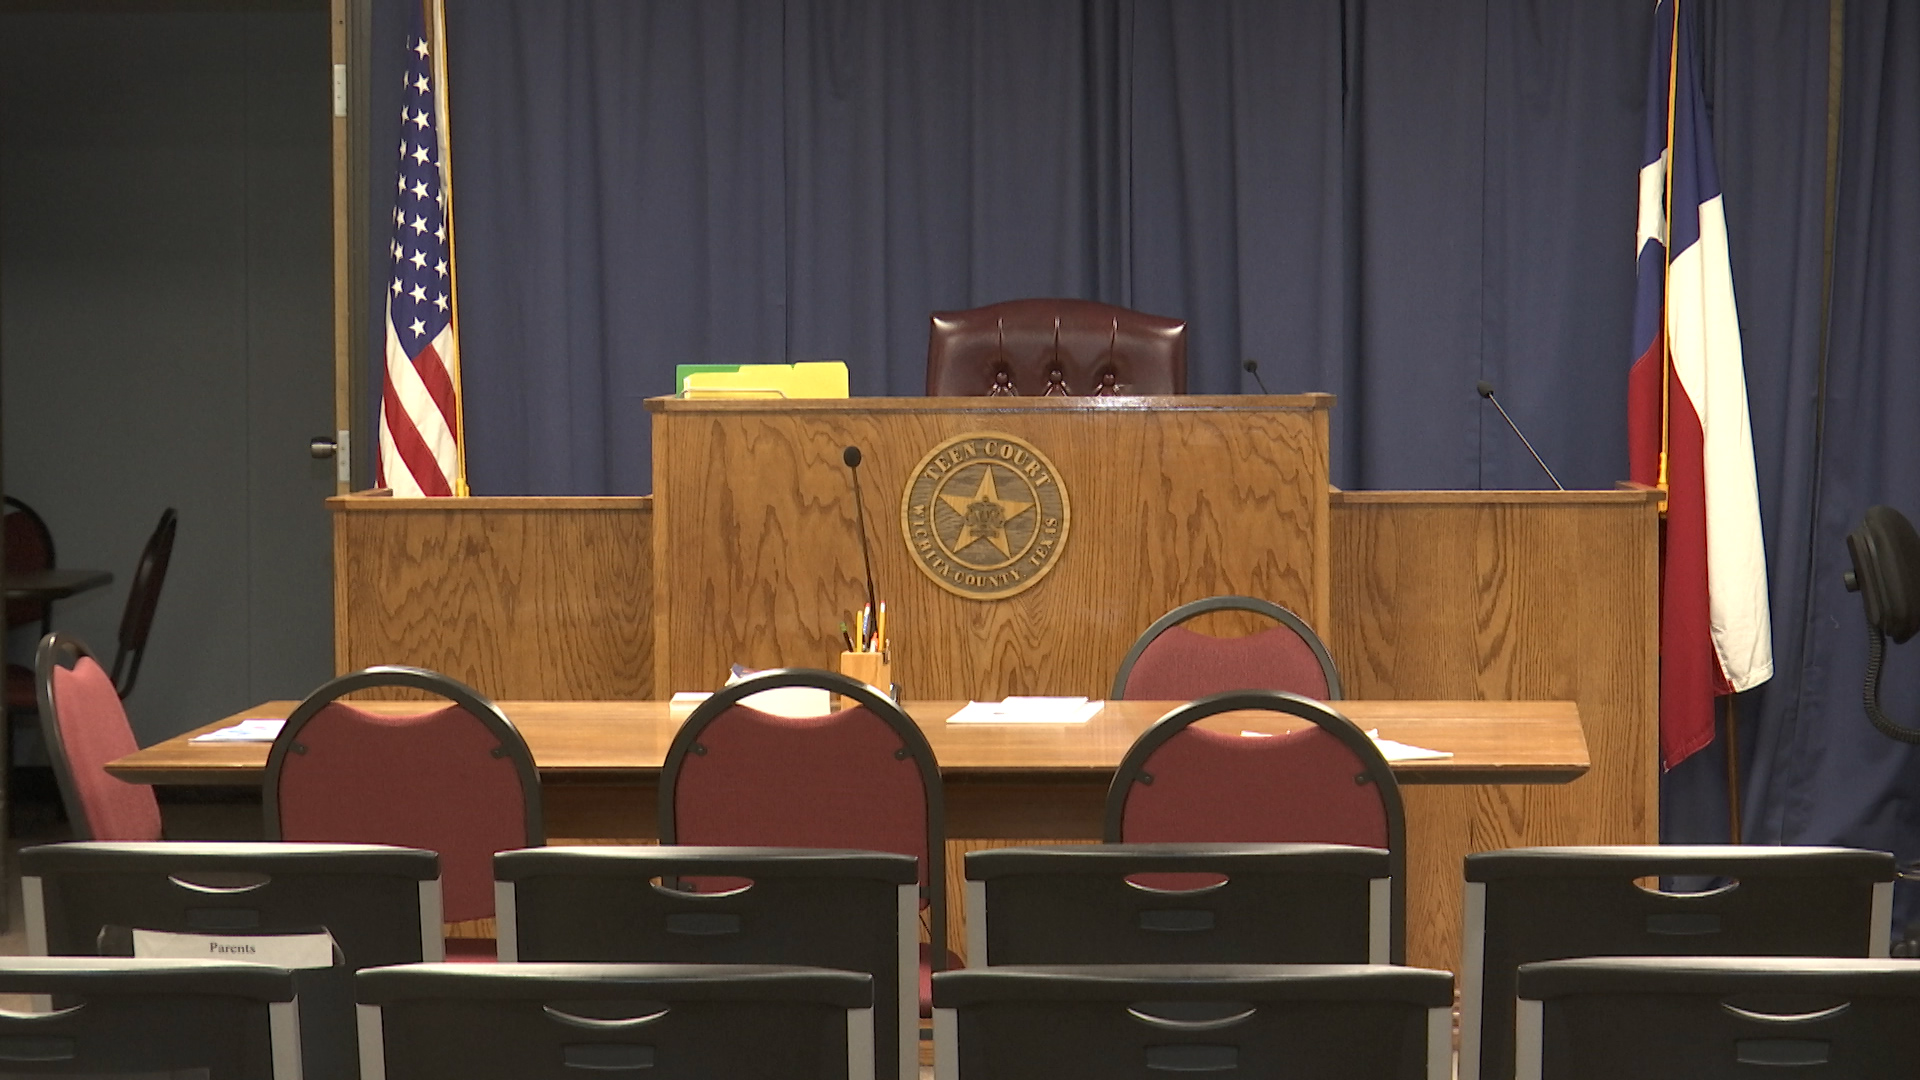 Wichita County Teen Court volunteers are hoping you can help them raise enough money for an important trip.